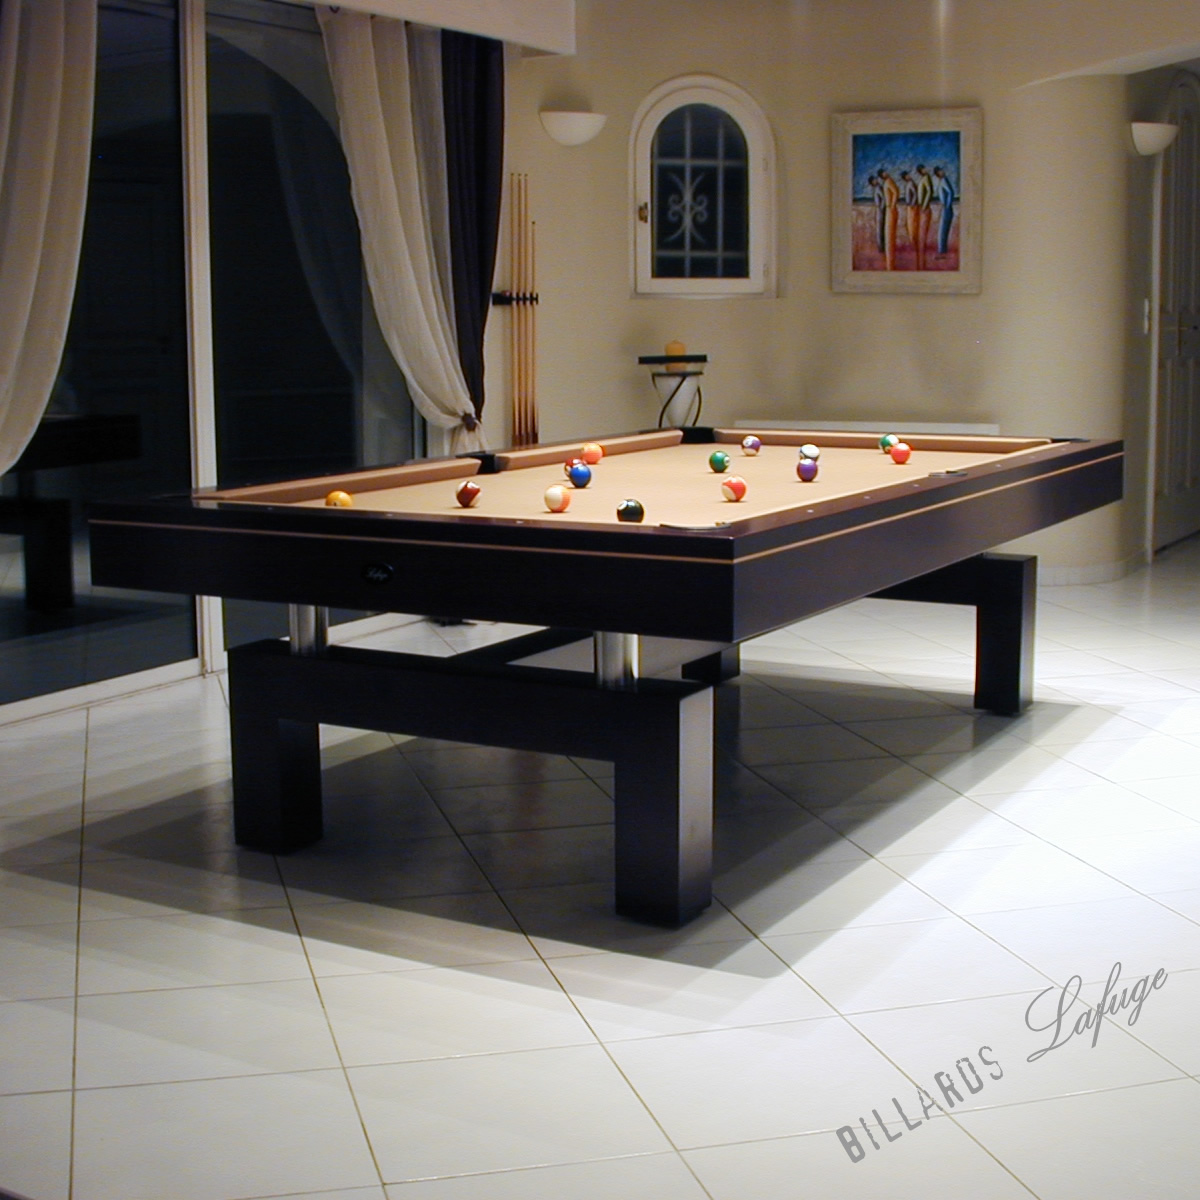 Billard contemporain - Une